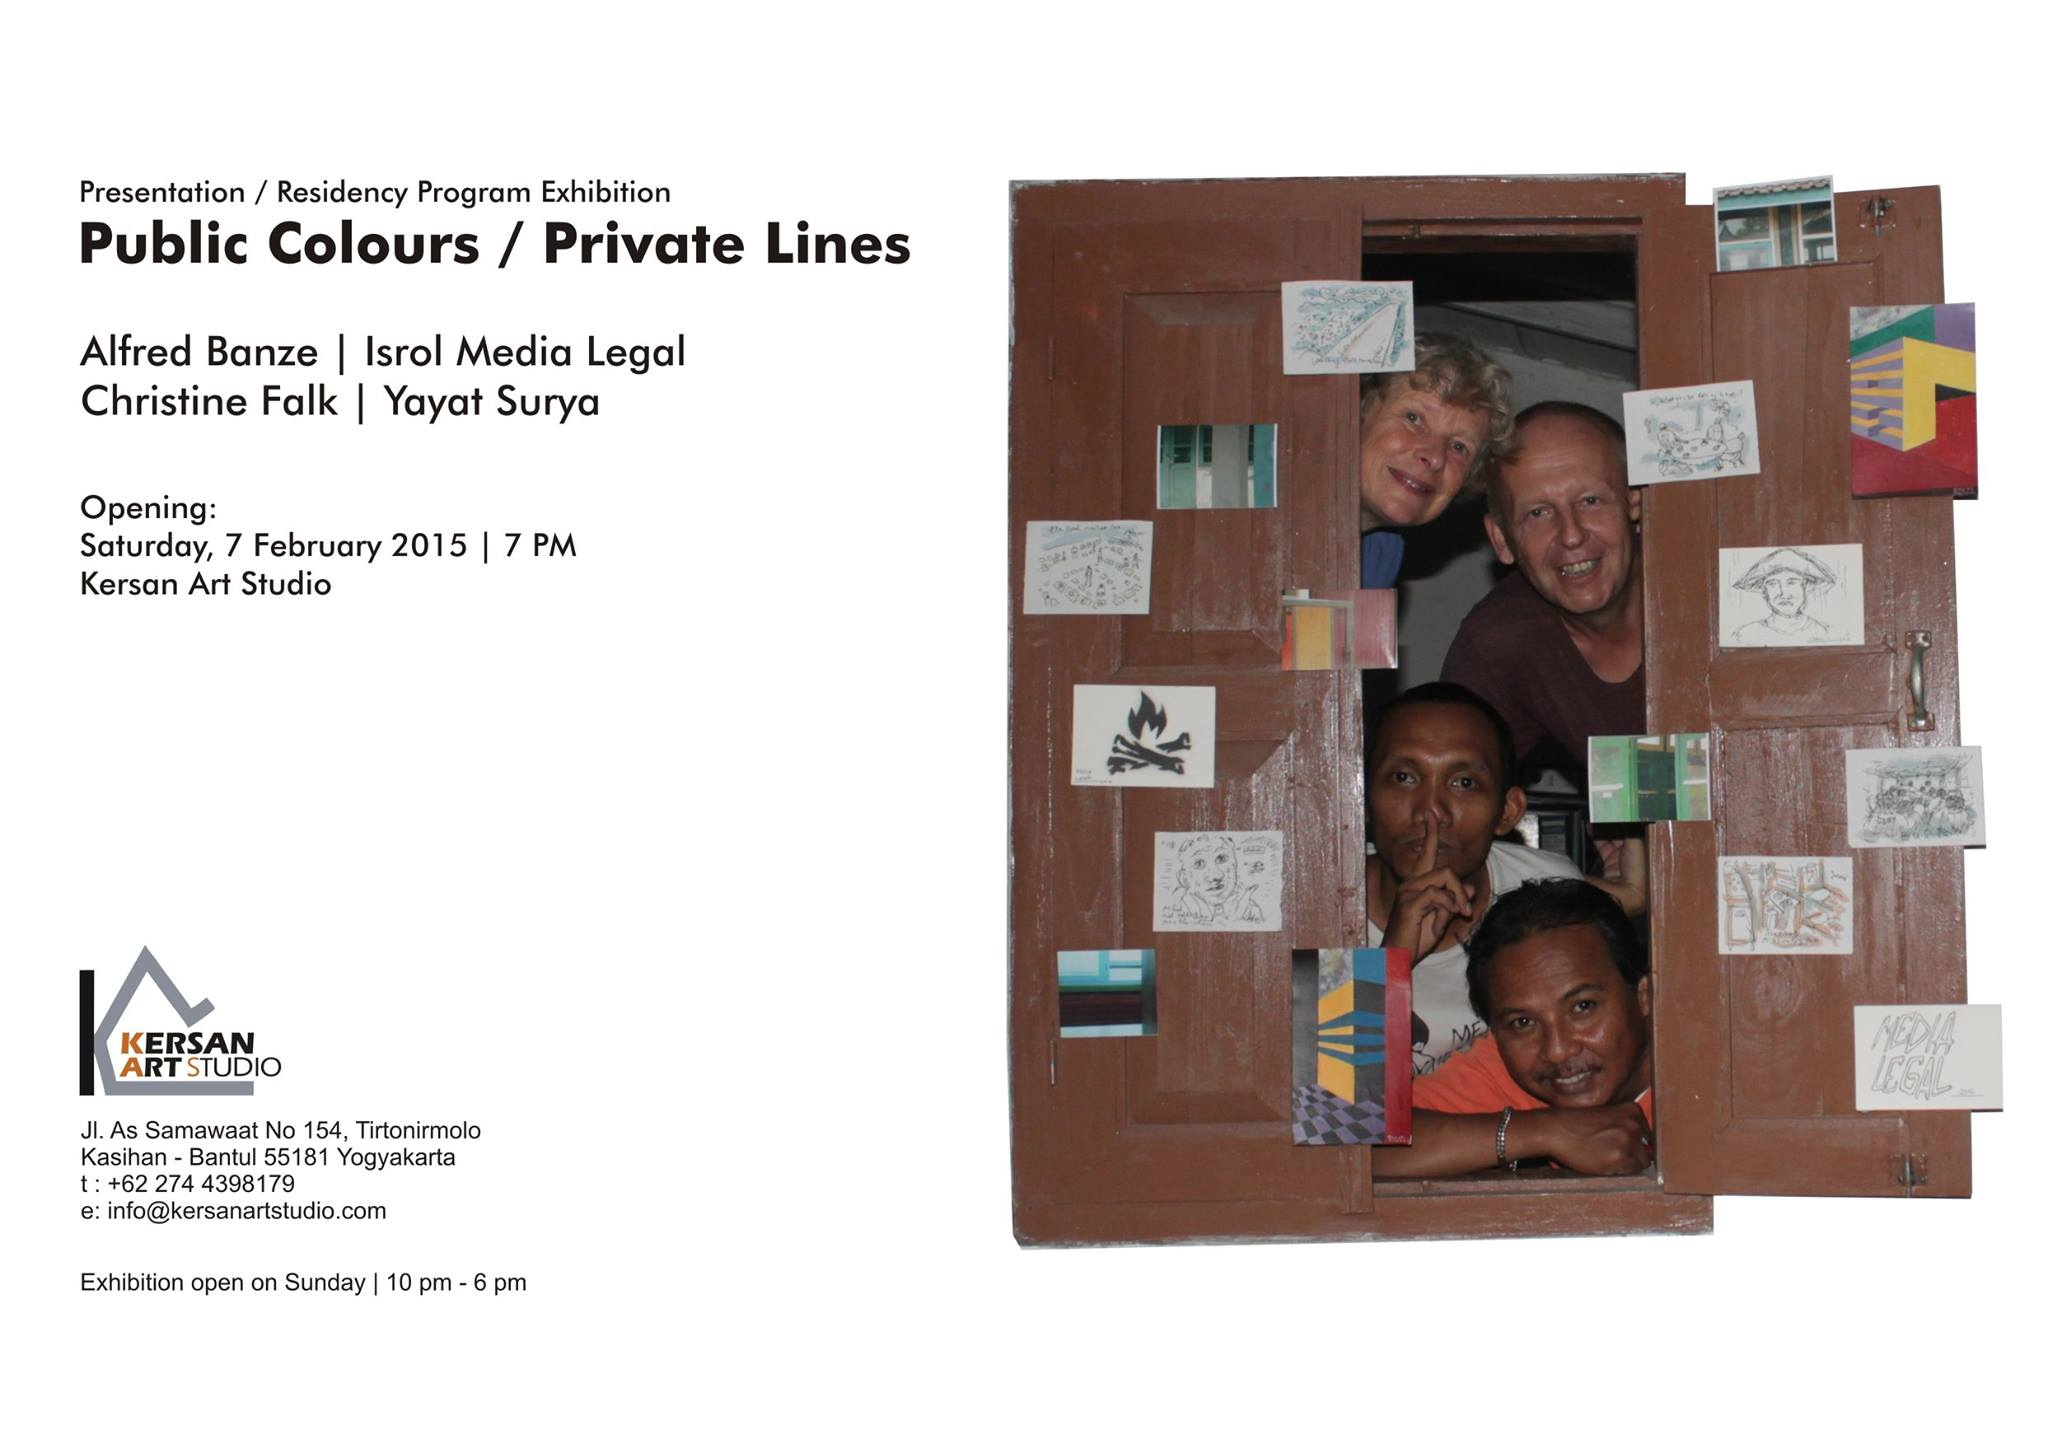 """Public Colors / Private Lines"" Exhibition + Workshop, Isrol Media Legal, Yayat Surya, Alfred Banze, Christine Falk, Kersan Art Studio, Yogyakarta, Indonesia, 2015"